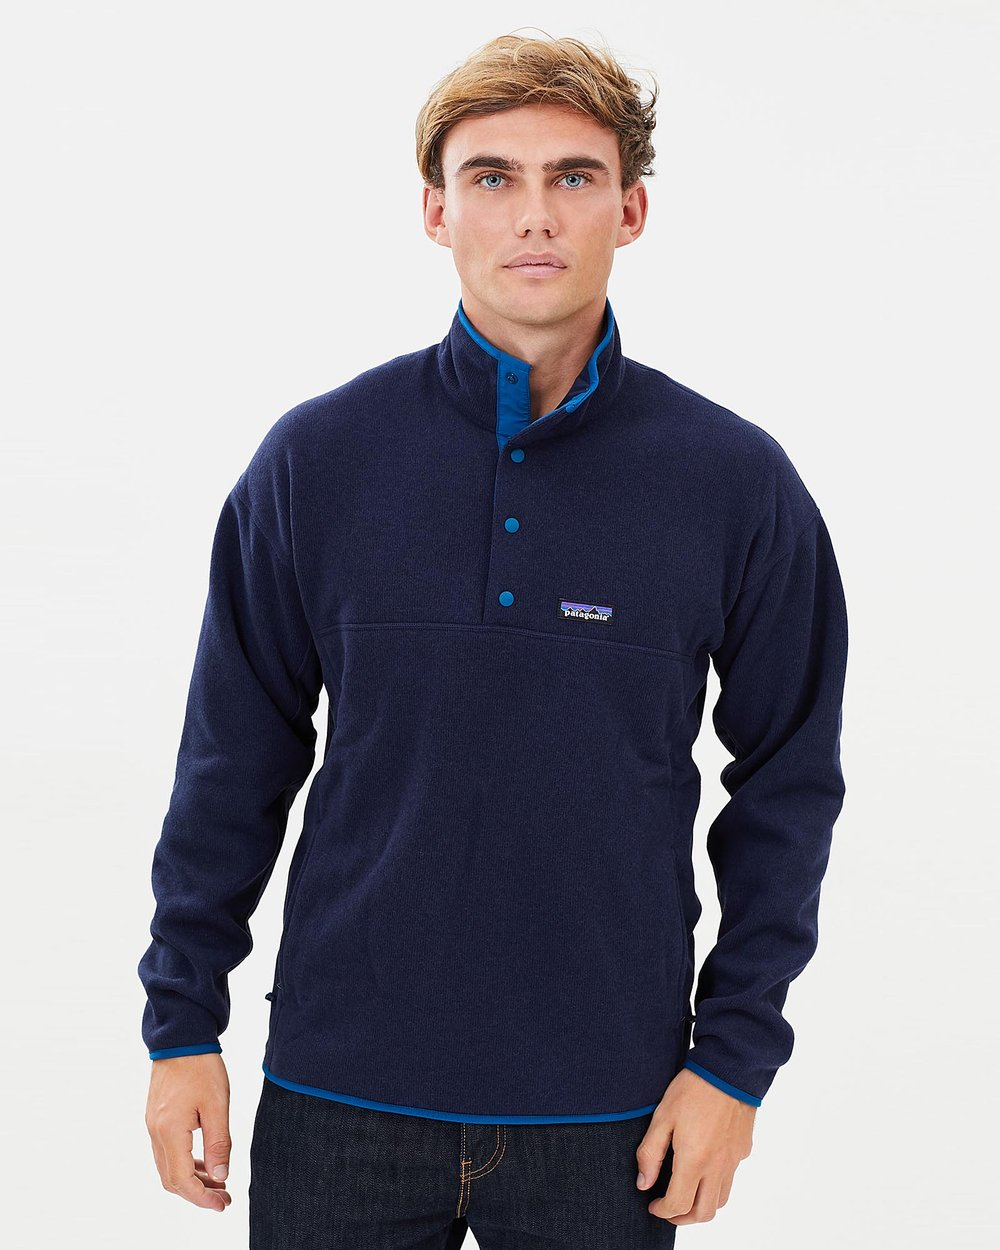 e351a3959adee5 Men's Lightweight Better Sweater Marsupial Fleece Pullover by Patagonia  Online | THE ICONIC | Australia